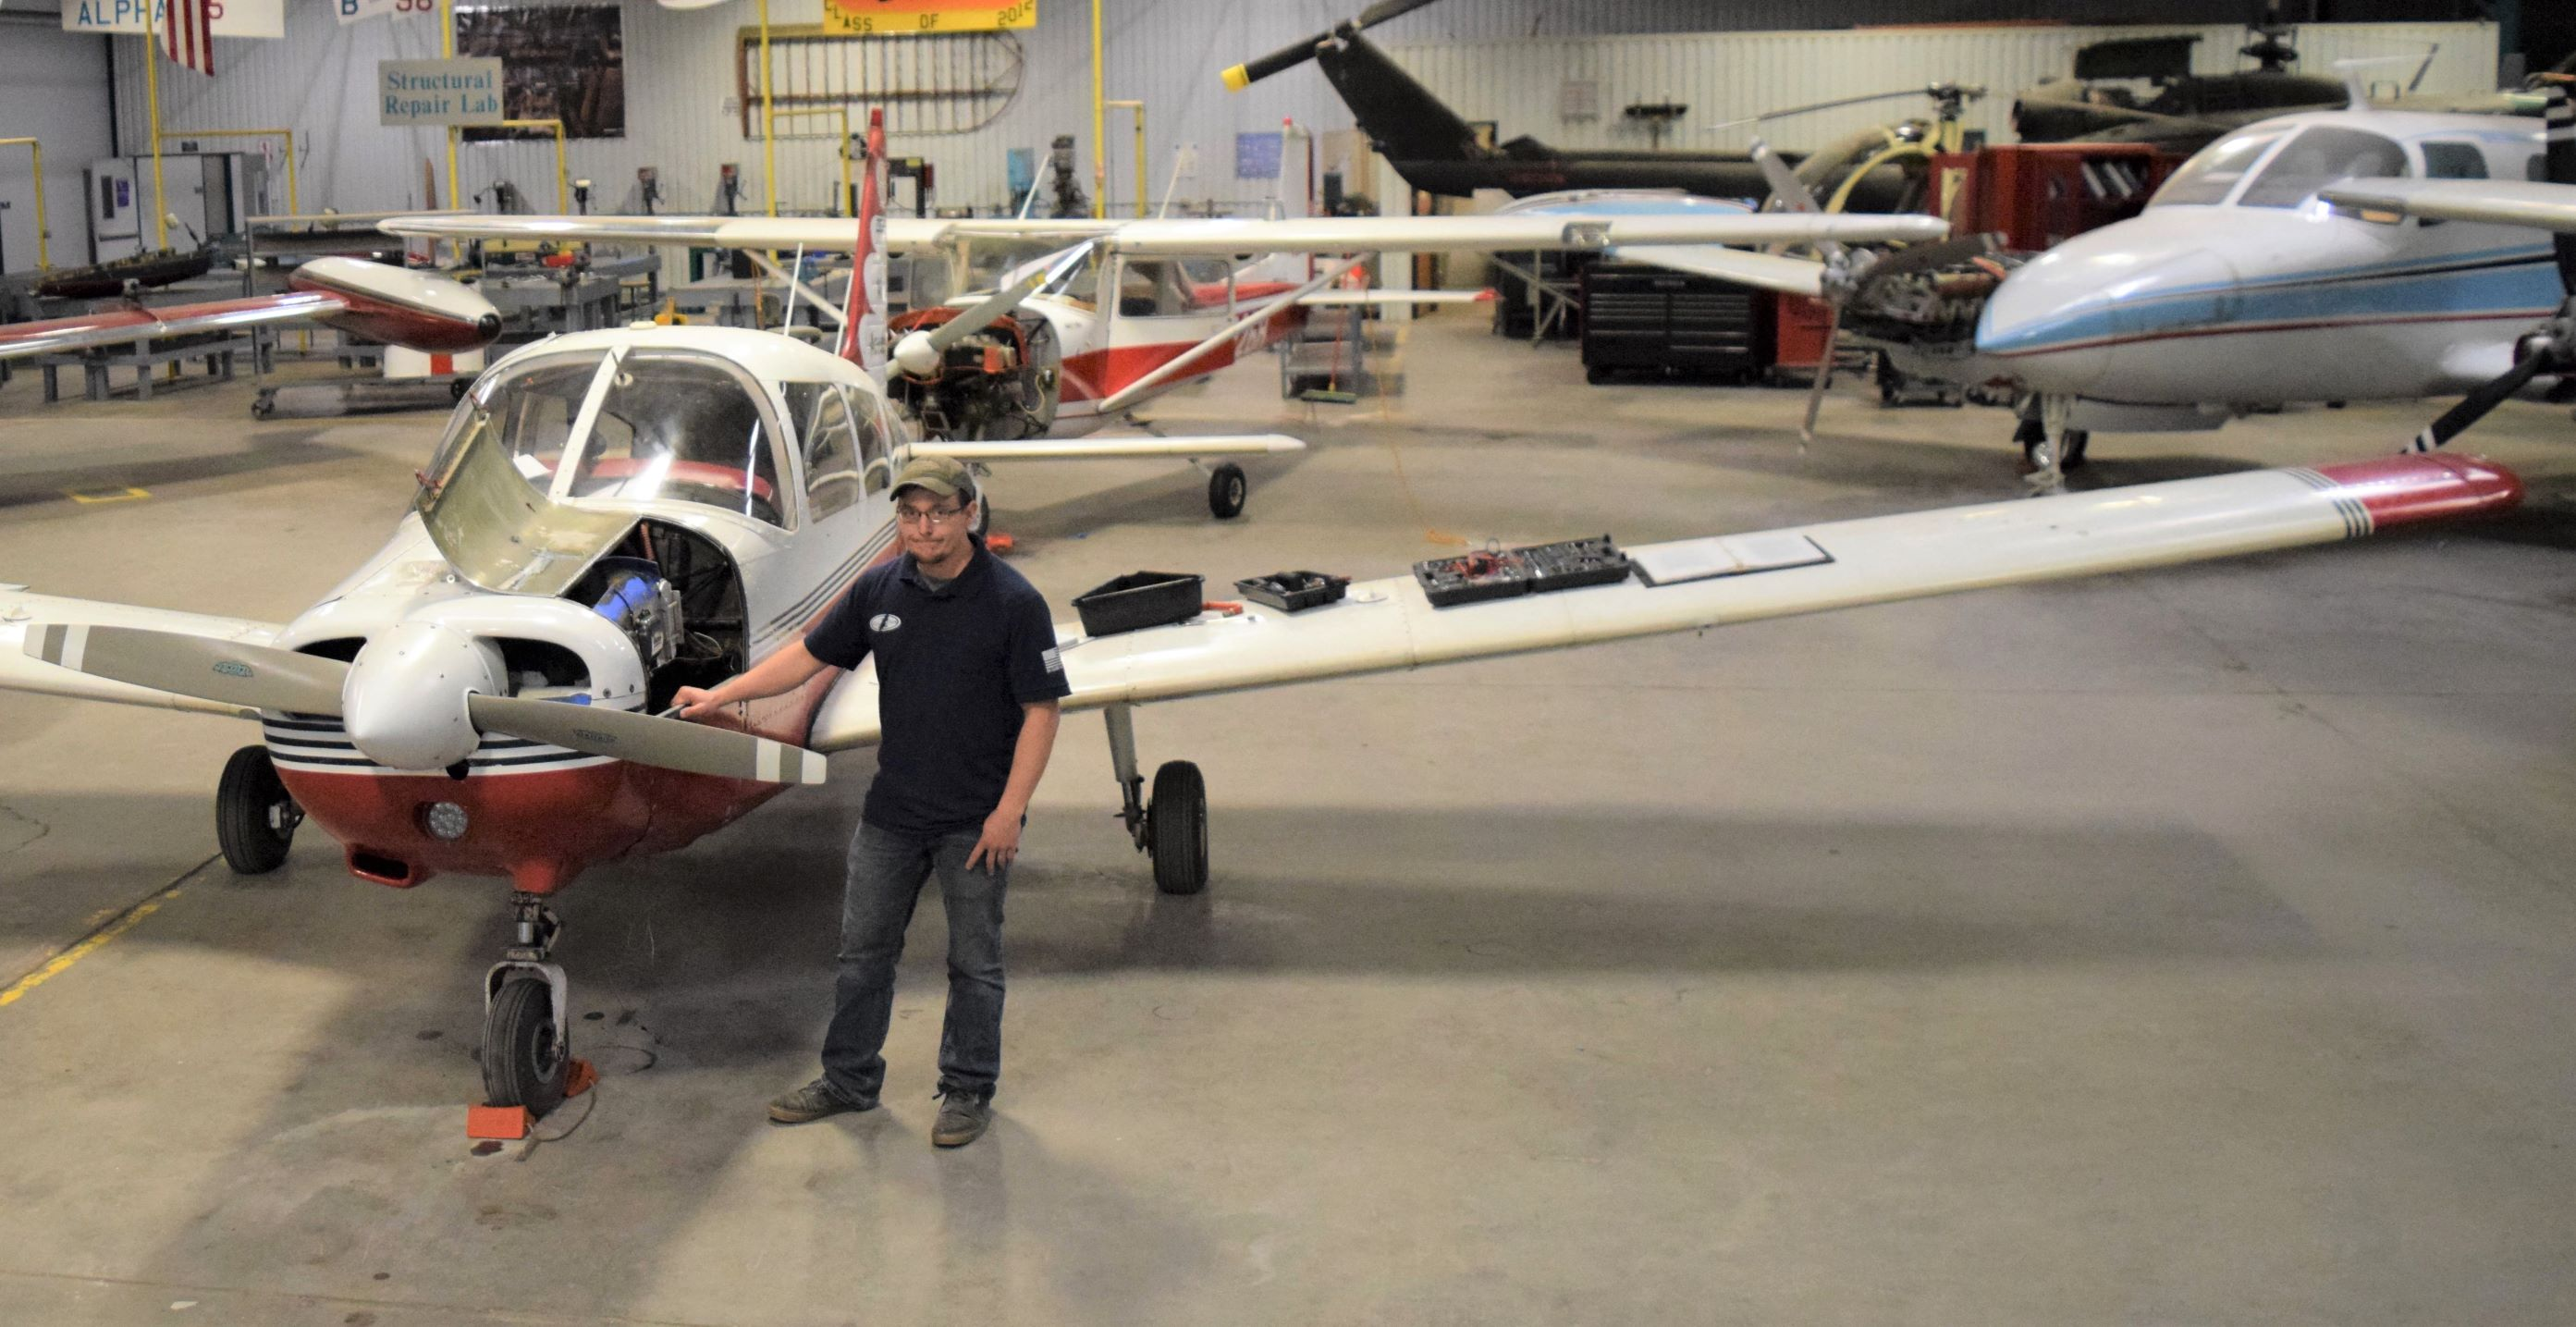 TSTC Student Reaches New Heights While Restoring the Past